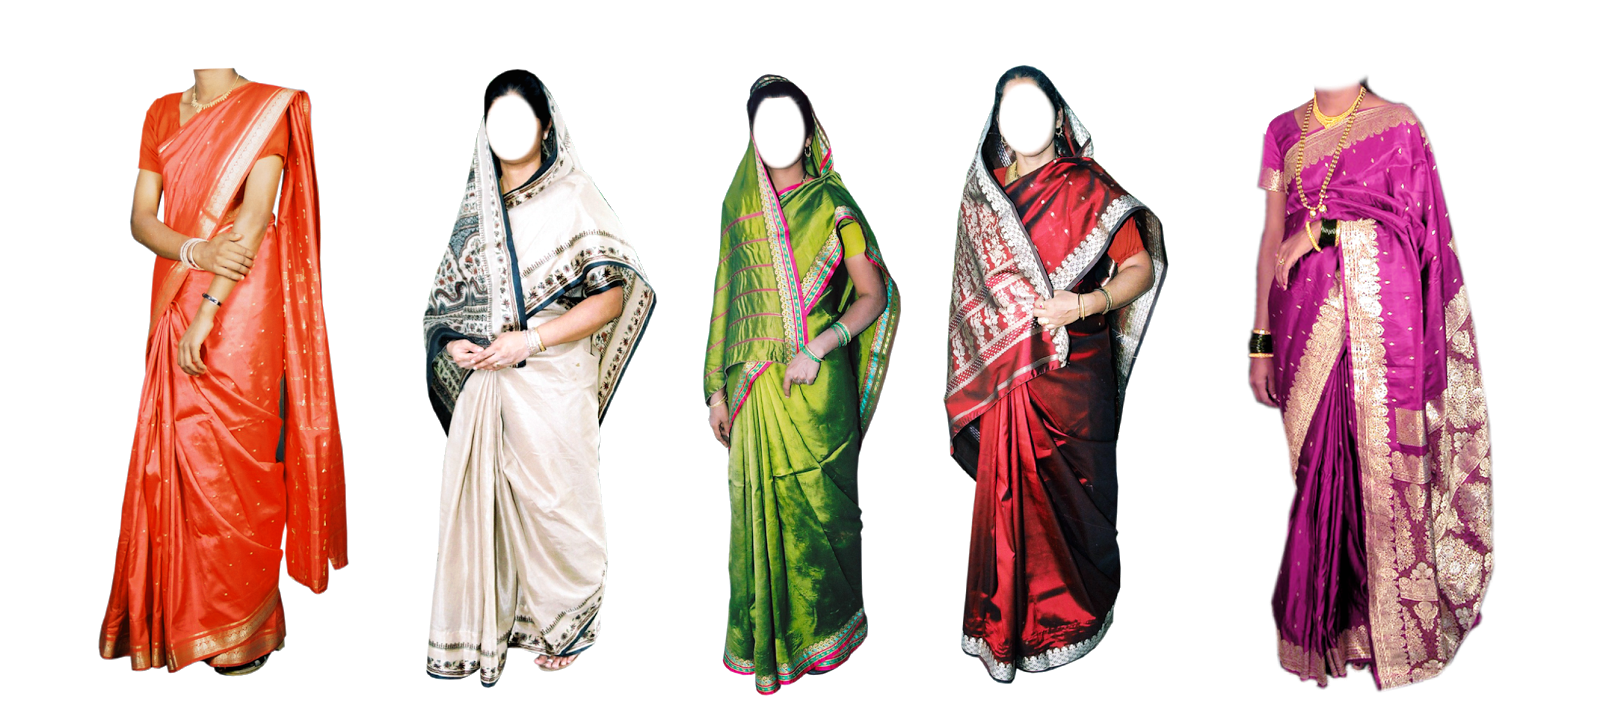 All Psd For Photoshop Psd Free Photoshop Indian Ladies Dress Photoshop Backgrounds Free